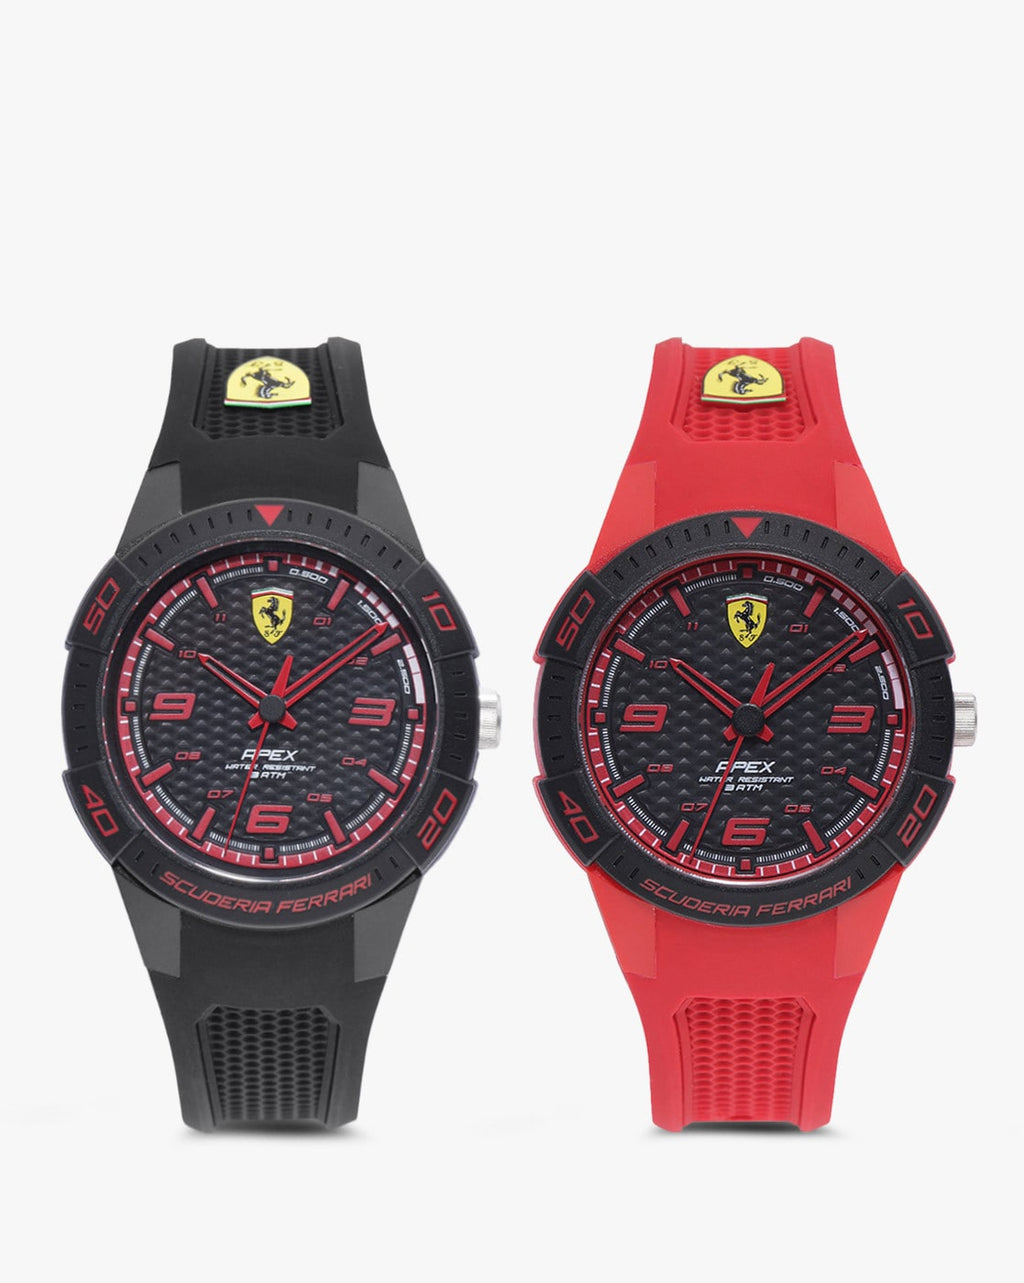 870044 Pack of 2 Analogue Wrist Watches